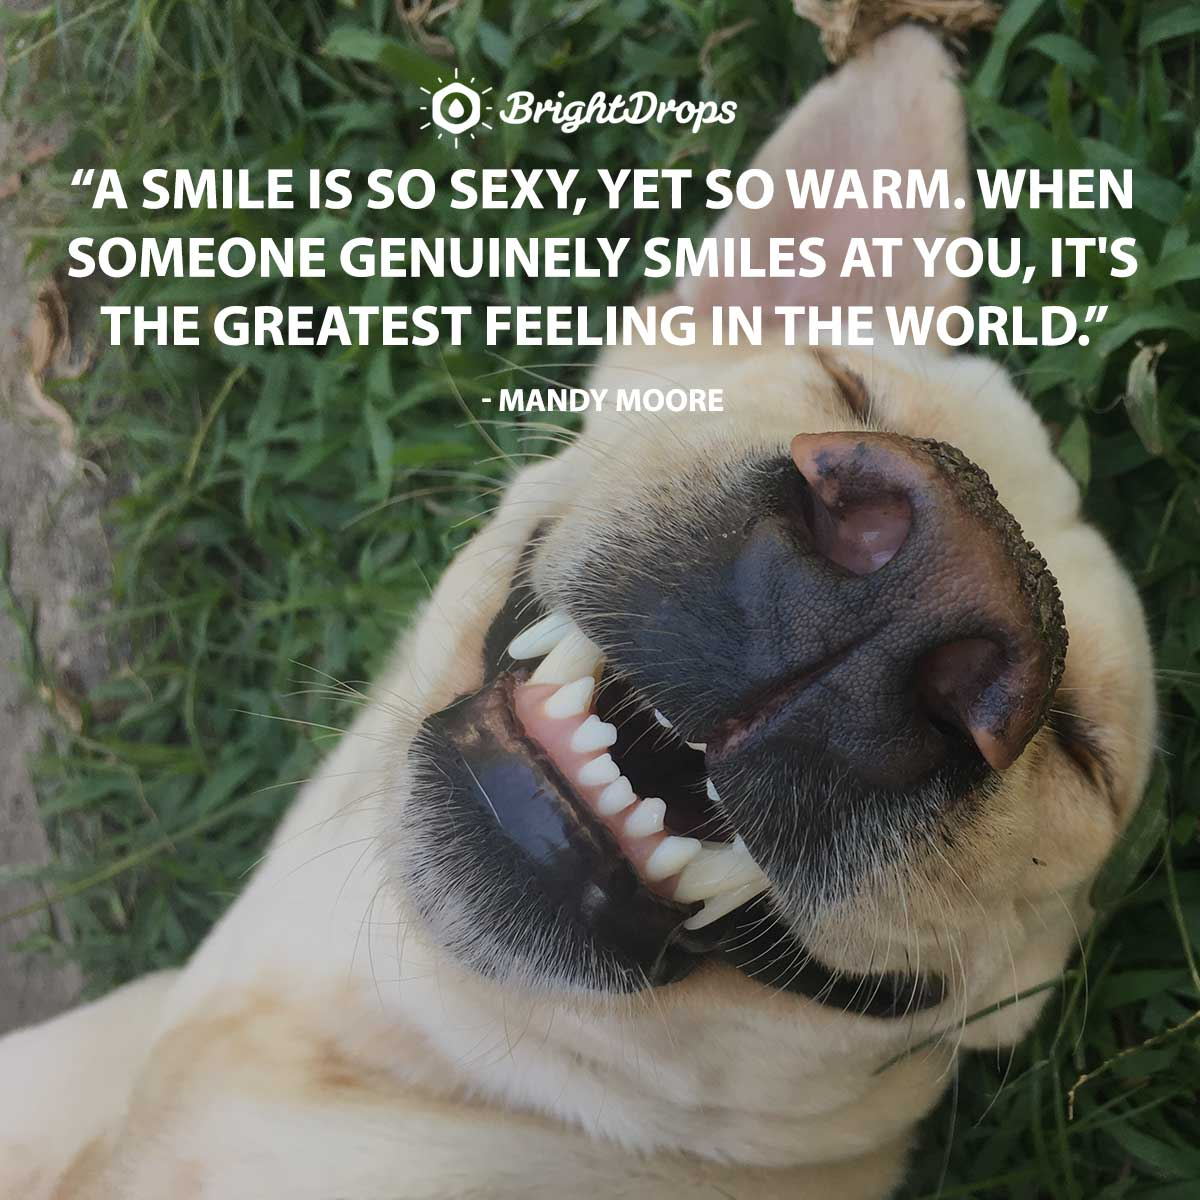 A smile is so sexy, yet so warm. When someone genuinely smiles at you, it's the greatest feeling in the world. -Mandy Moore